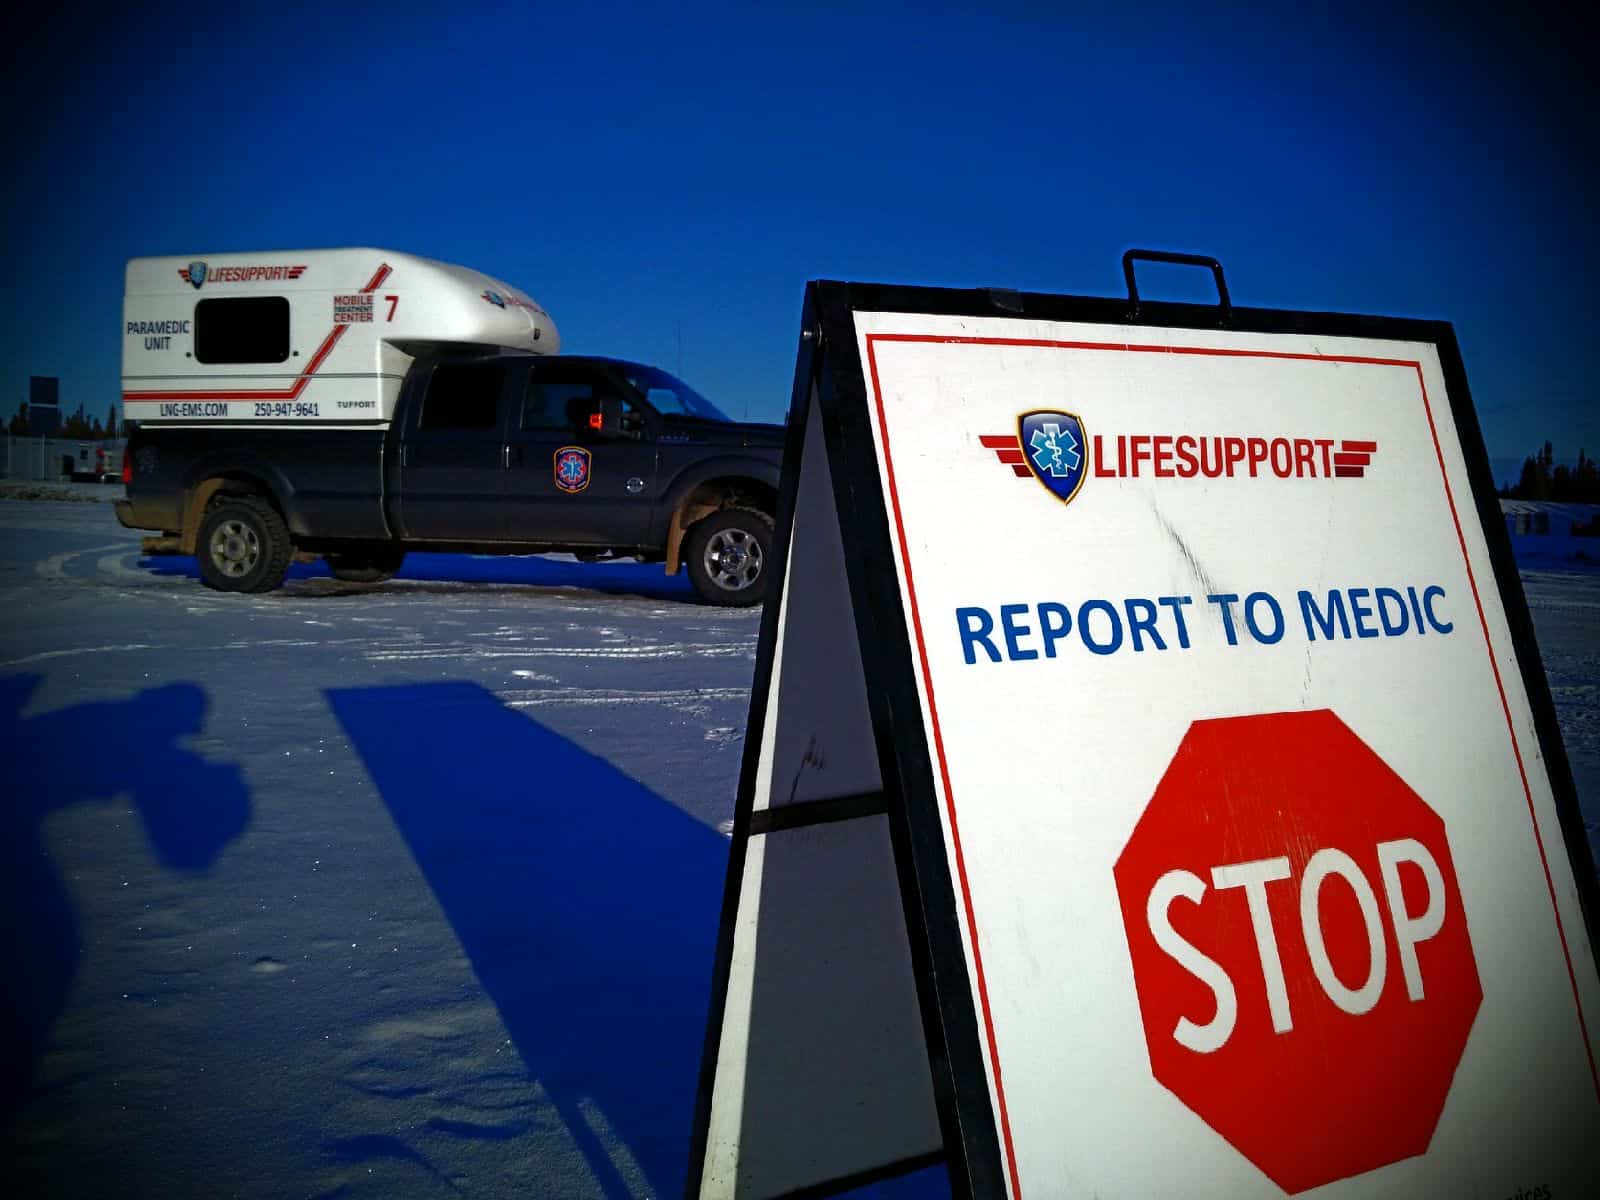 LIFESUPPORT truck and stop sign